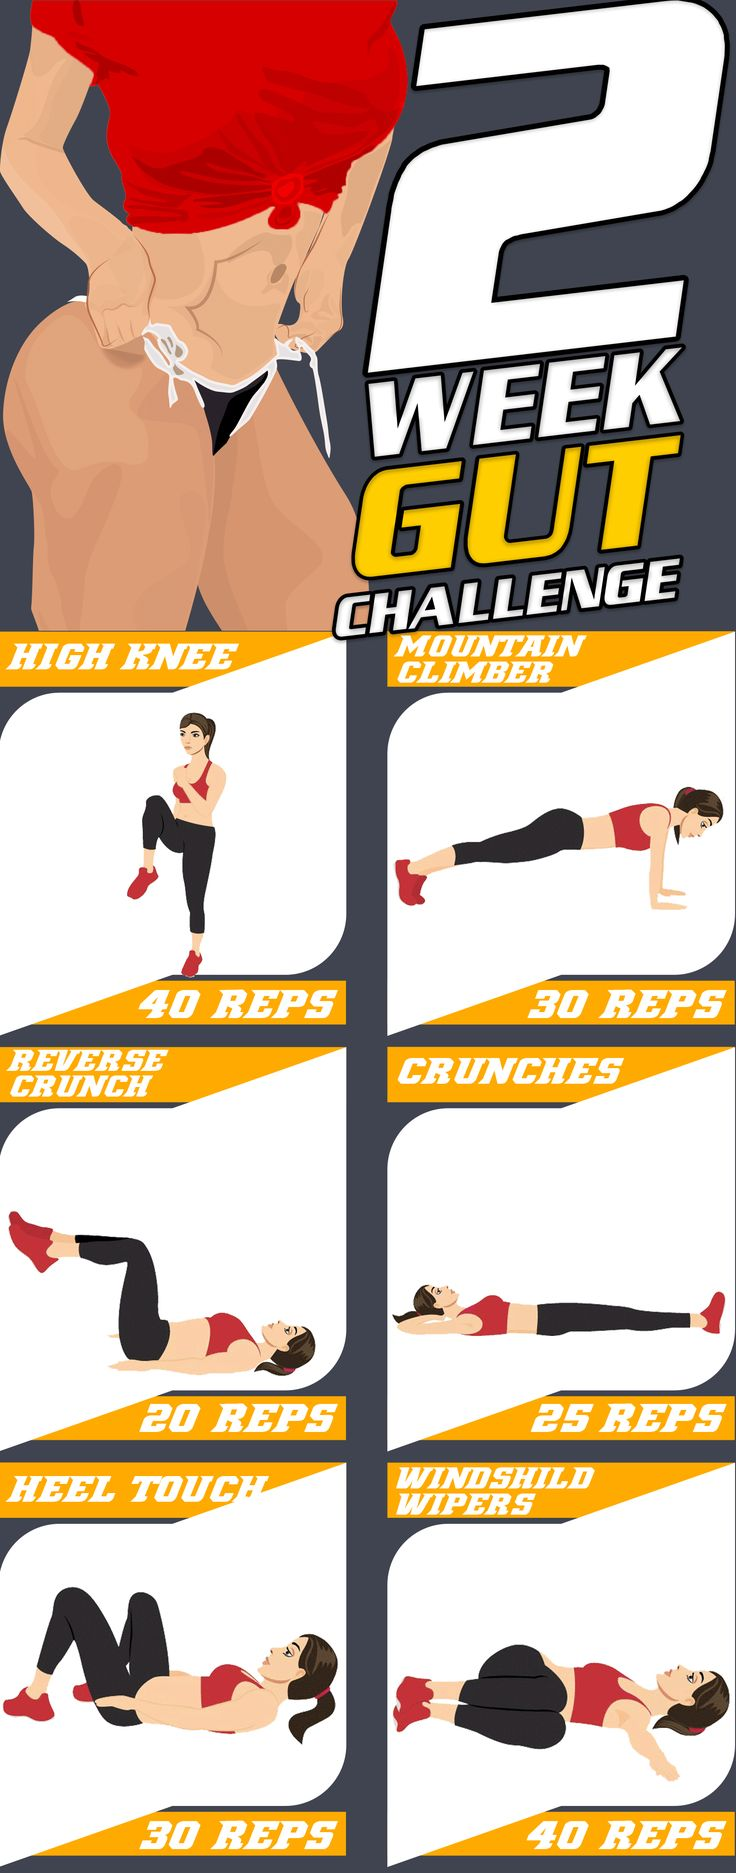 Ready for this 6 pack abs challenge that will slim and strengthen your abdominal…